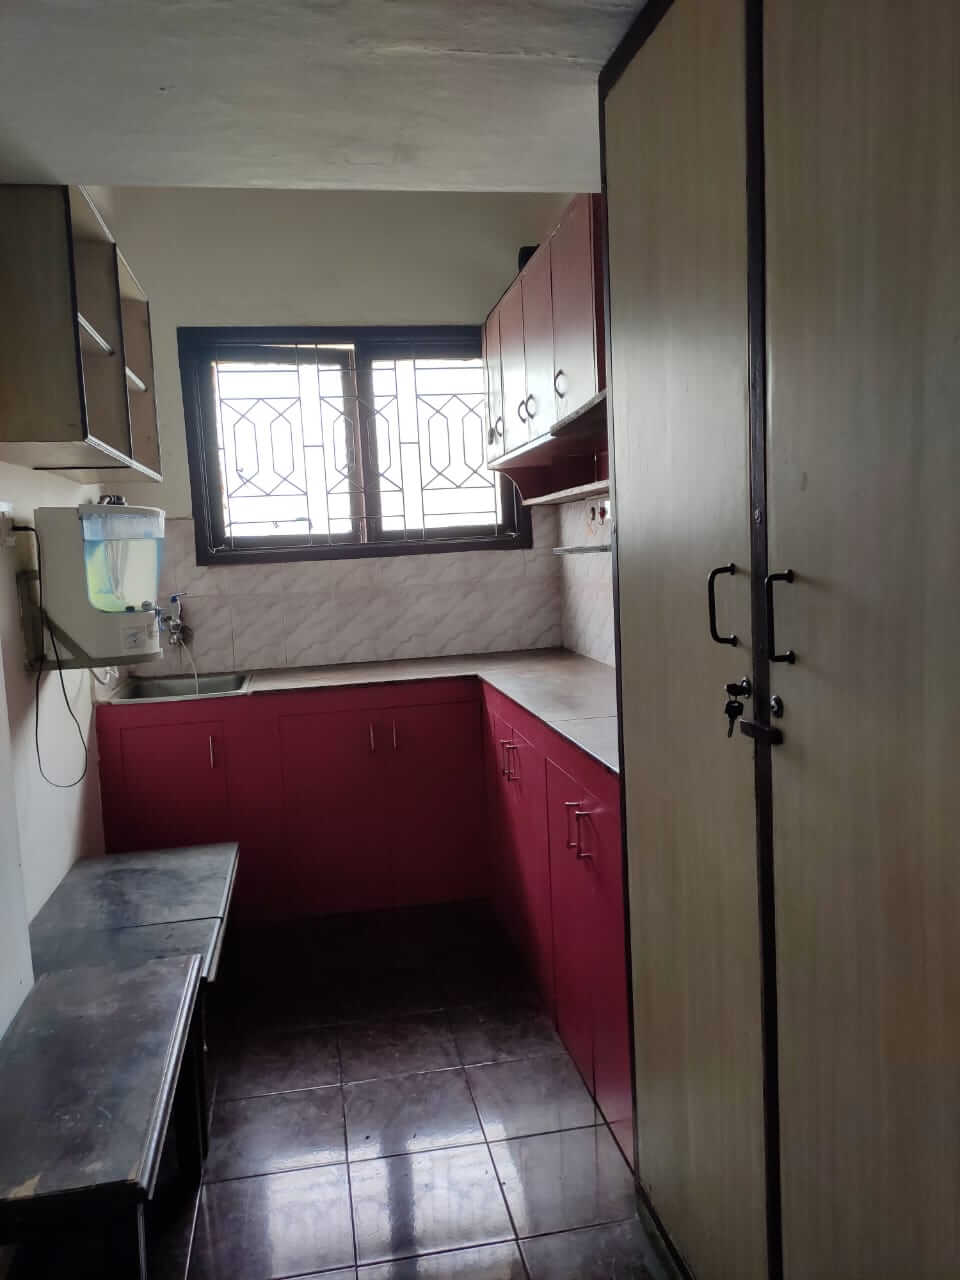 2 BHK Apartment / Flat for Rent 800 Sq. Feet at Chennai